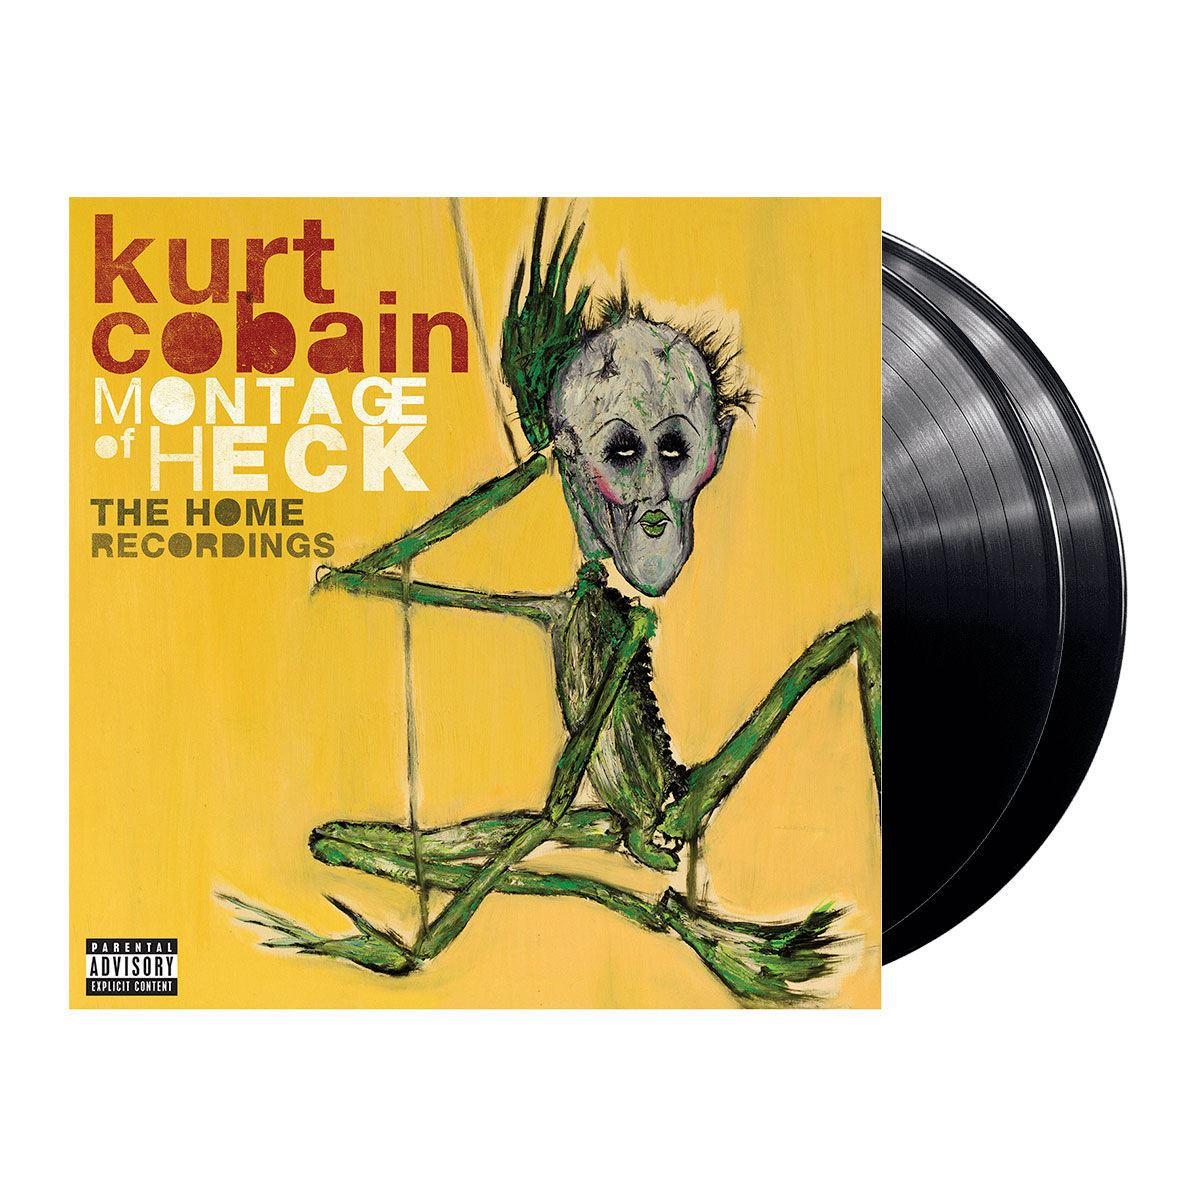 LP2 Kurt Cobain- Montage Of Heck: The Home Recordings